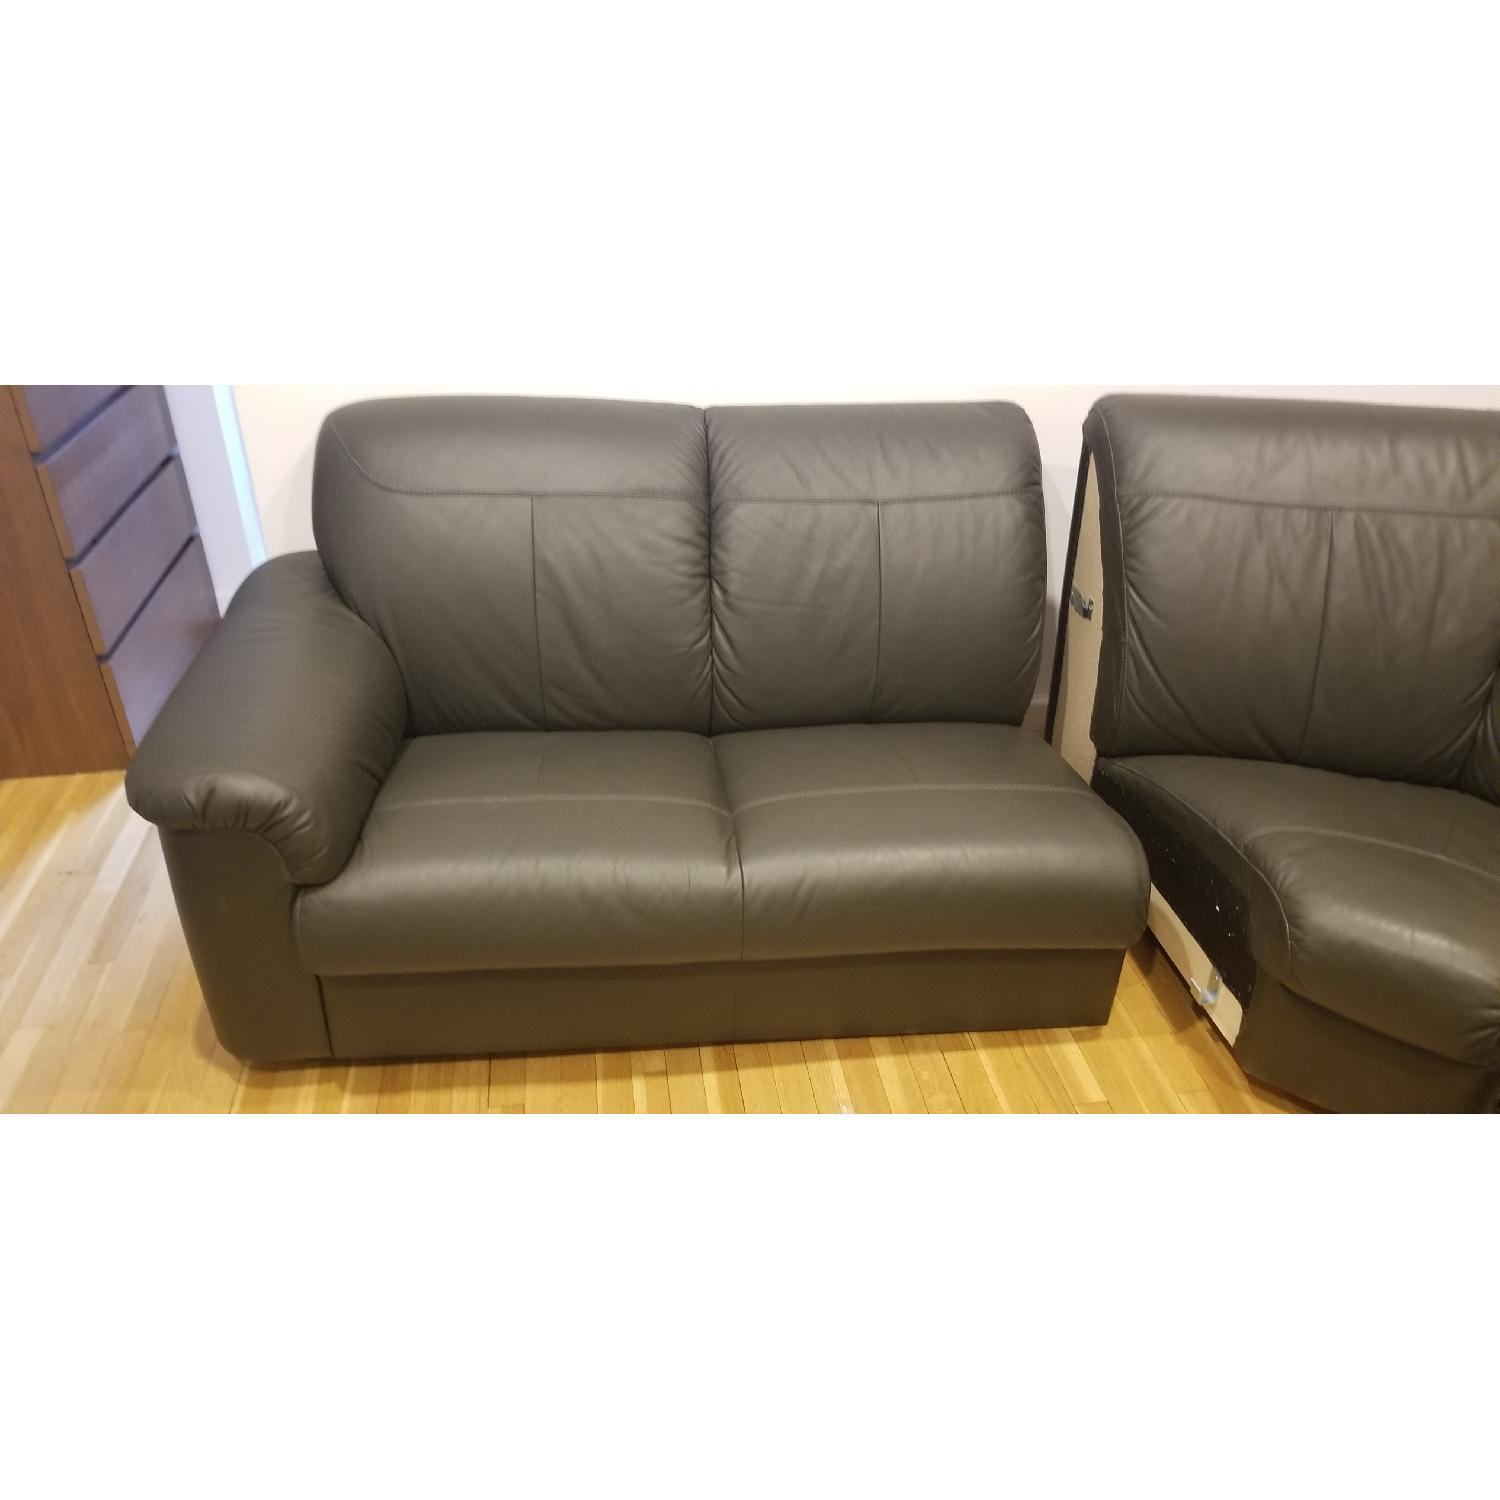 Ikea Timsfors Faux Leather Sectional Sofa - image-12